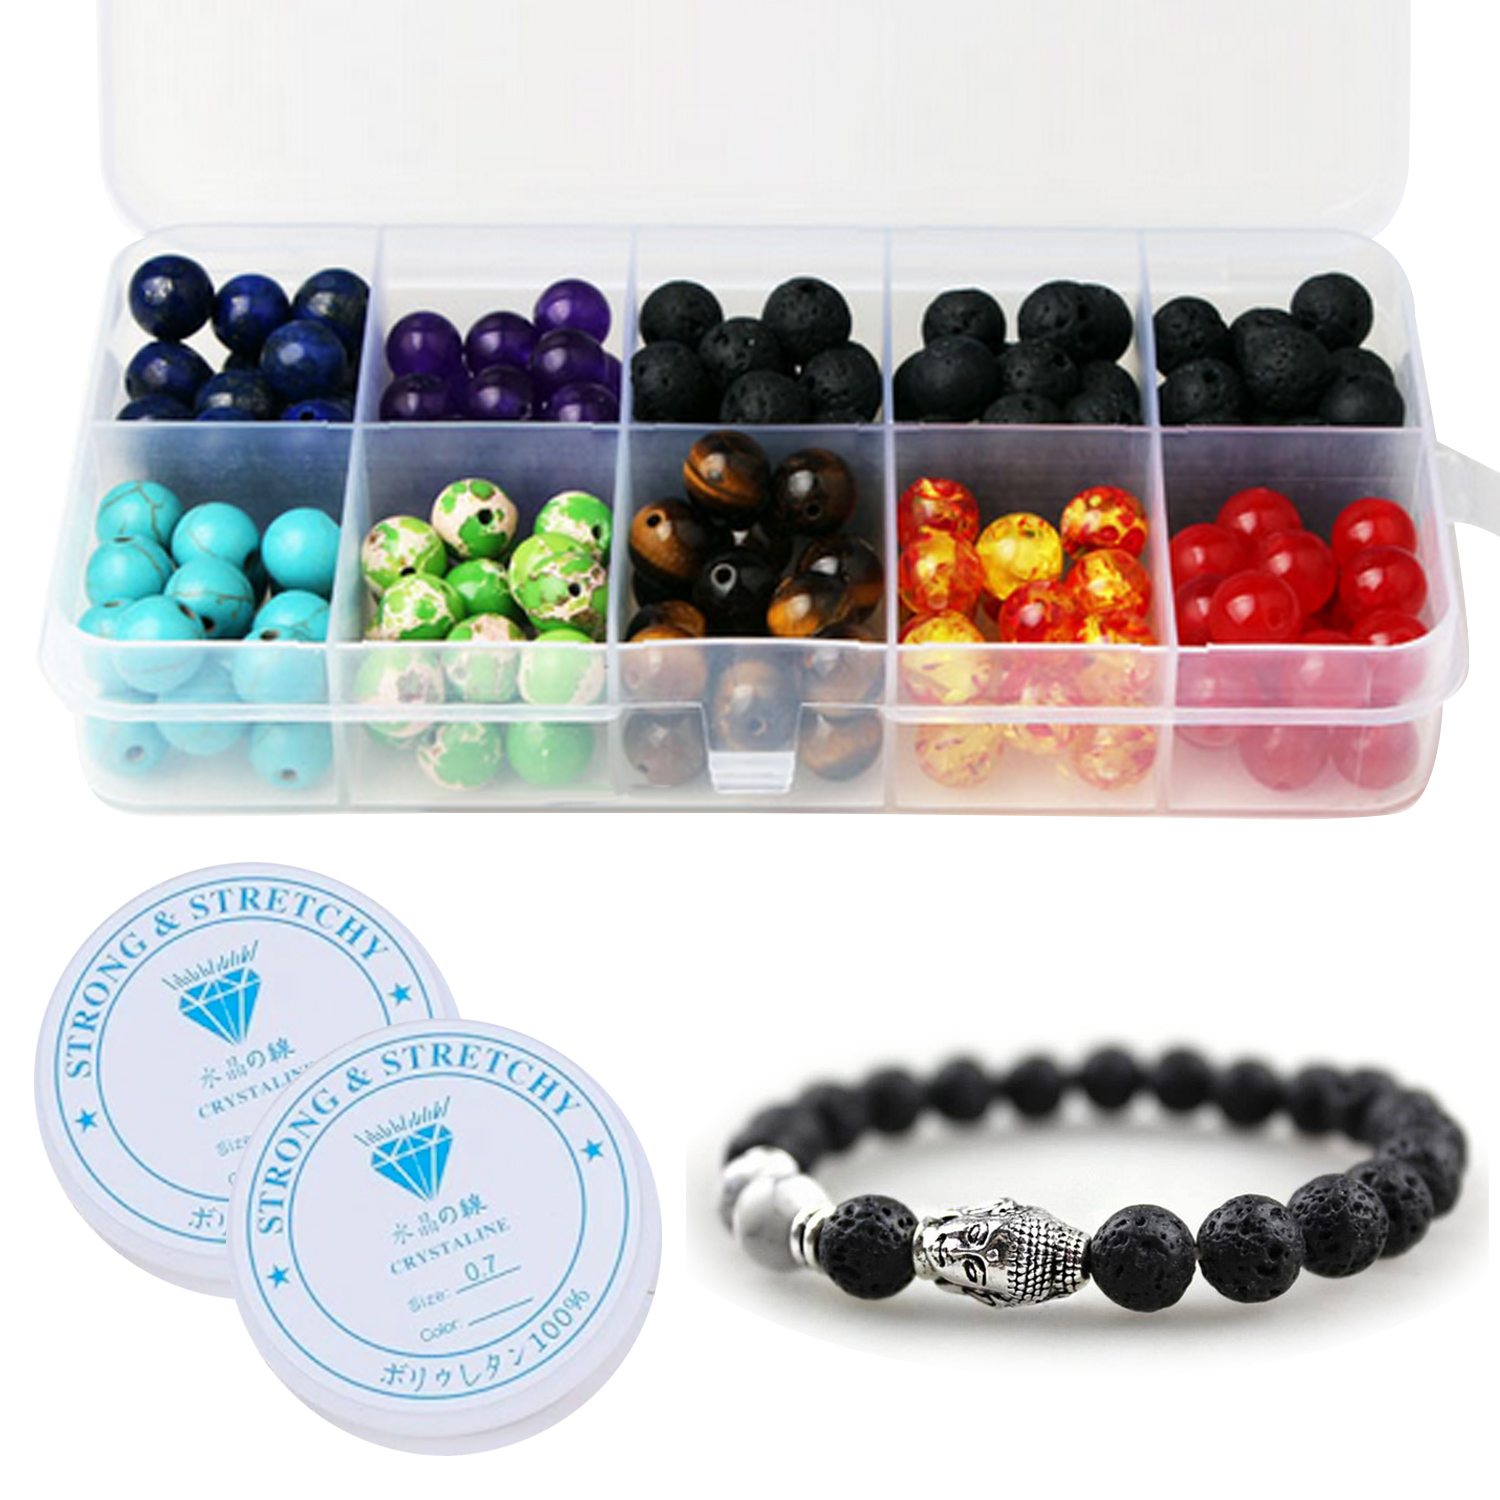 200Pcs Colorful Chakra Beads Black Lava Rock Stone Loose Beads Set With 2 Roll Crystal String Toys For Kid DIY Bracelet Necklace